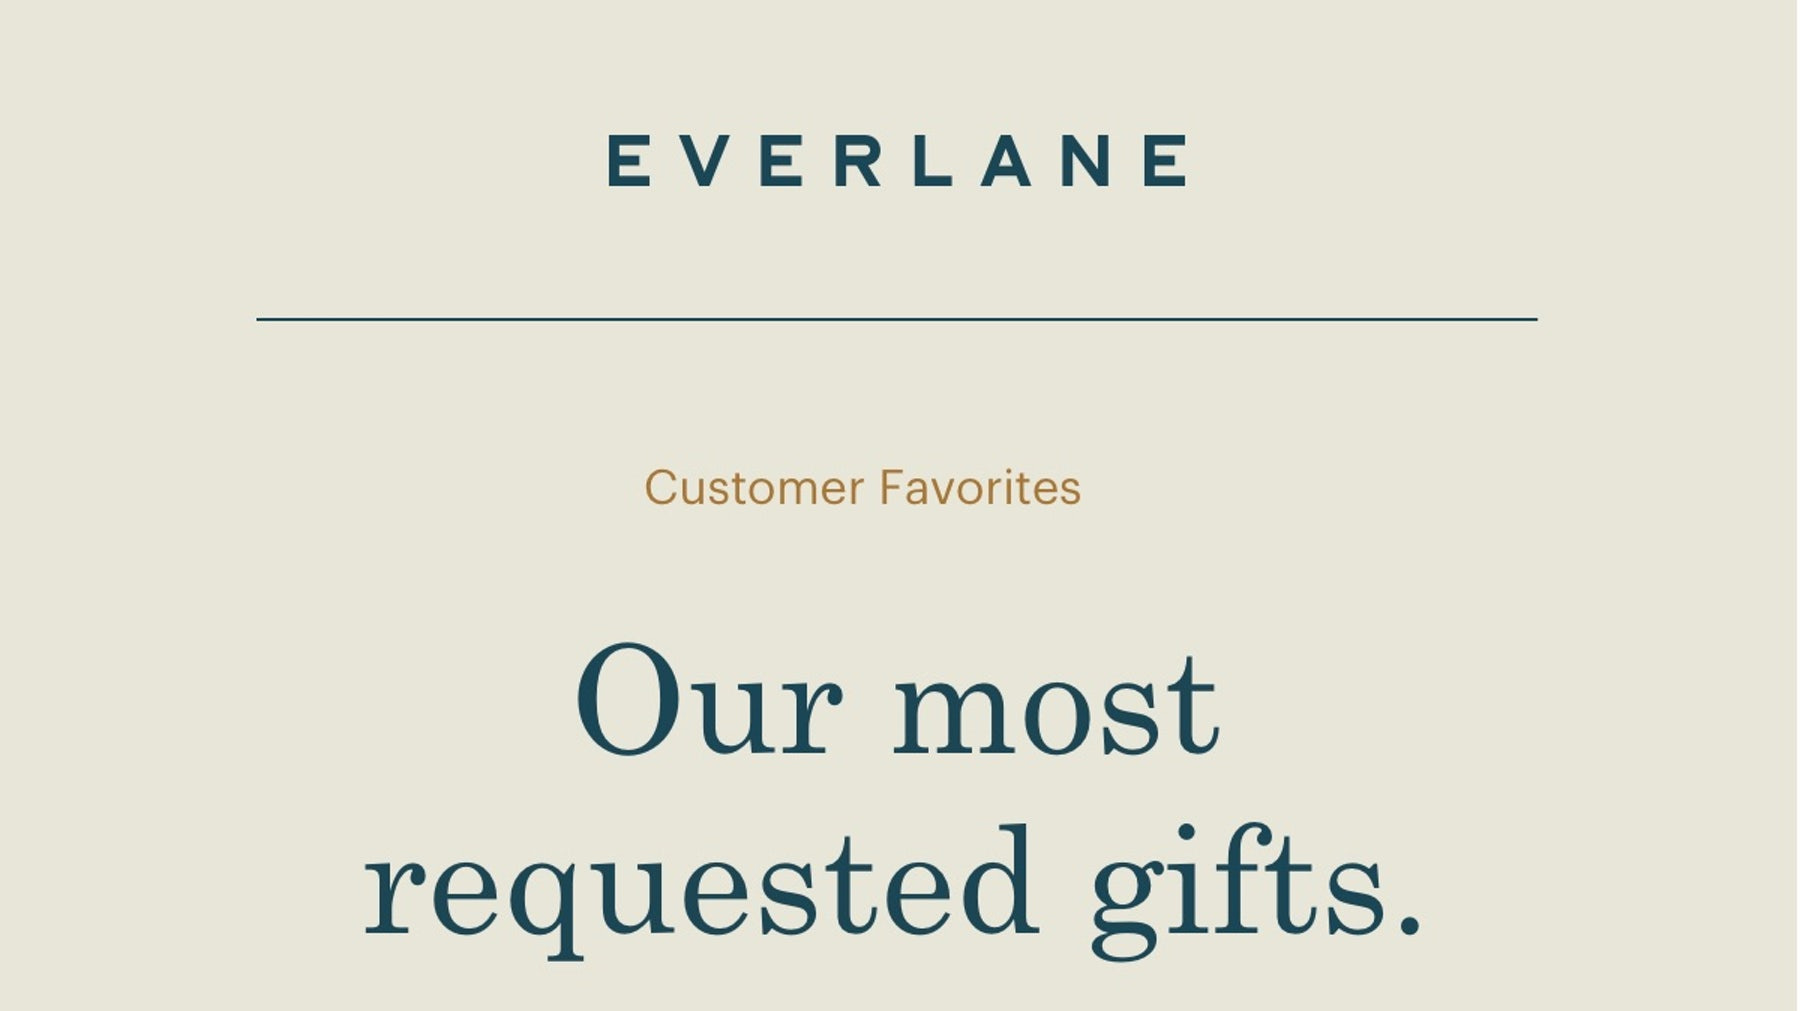 Our most requested gifts.